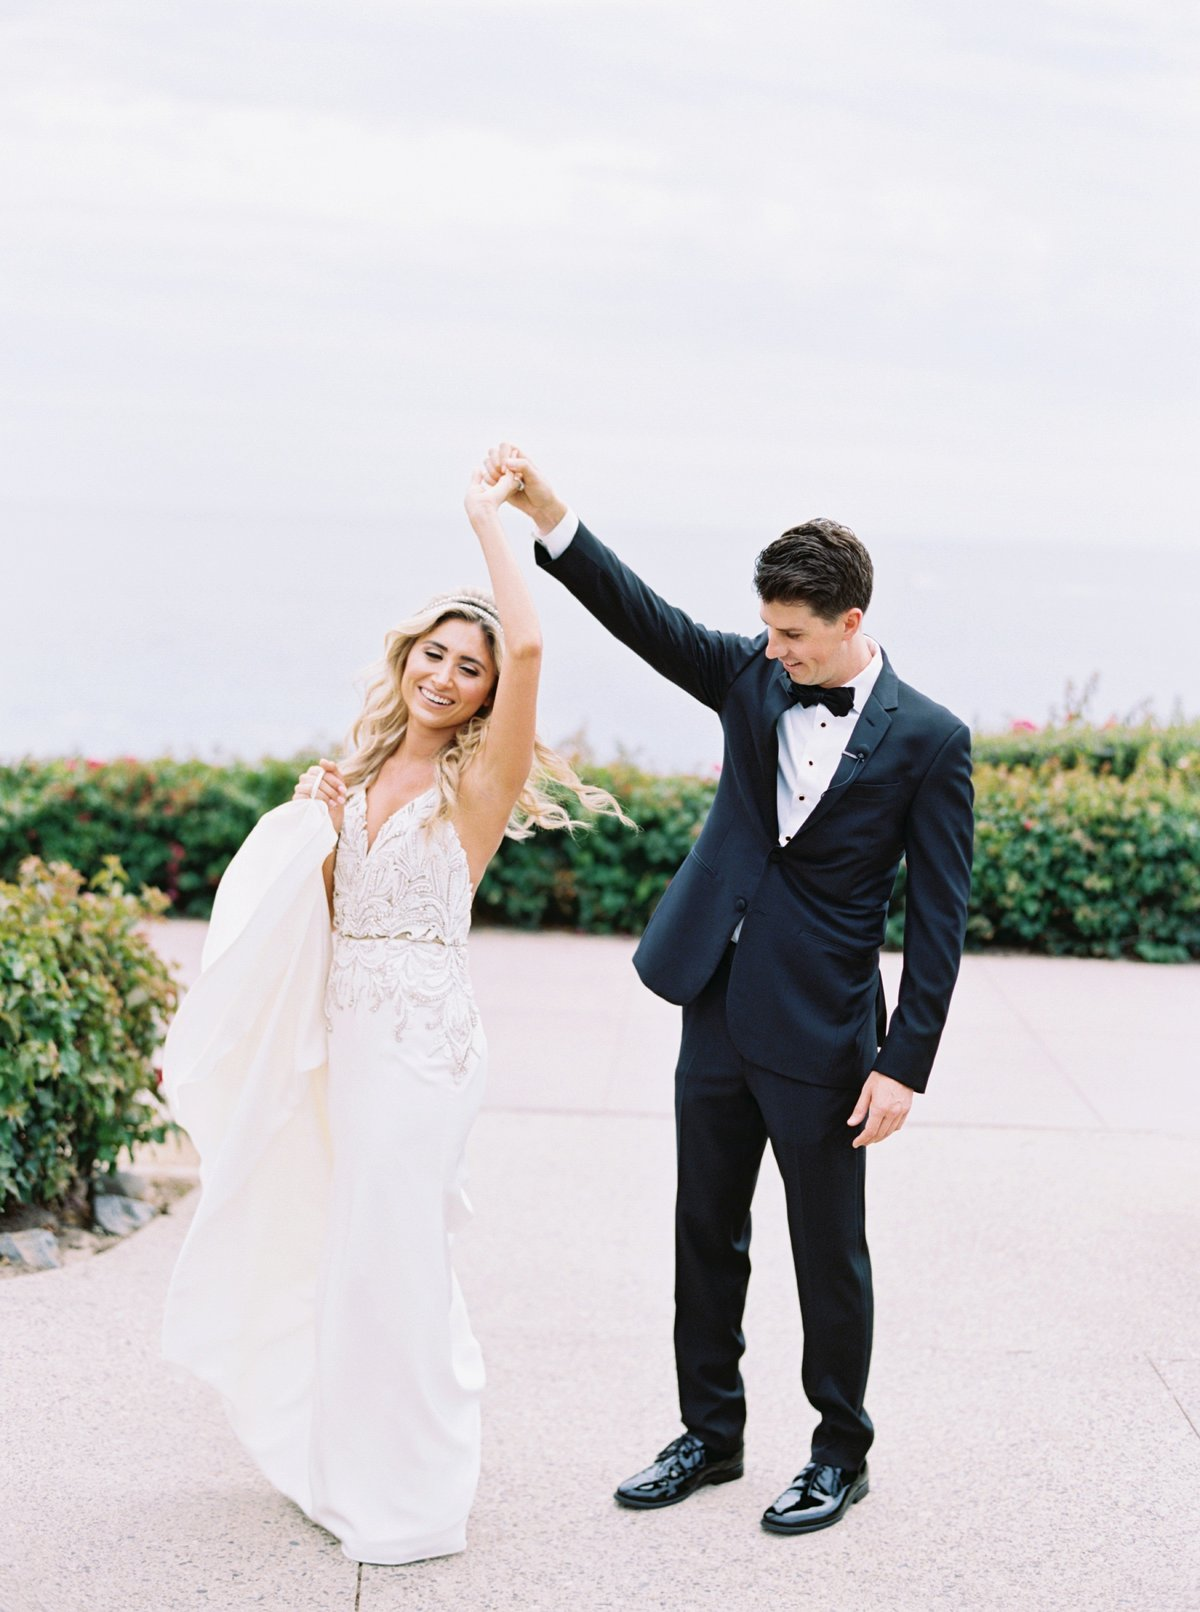 nicoleclareyphotography_evan+jeff_laguna beach_wedding_0009